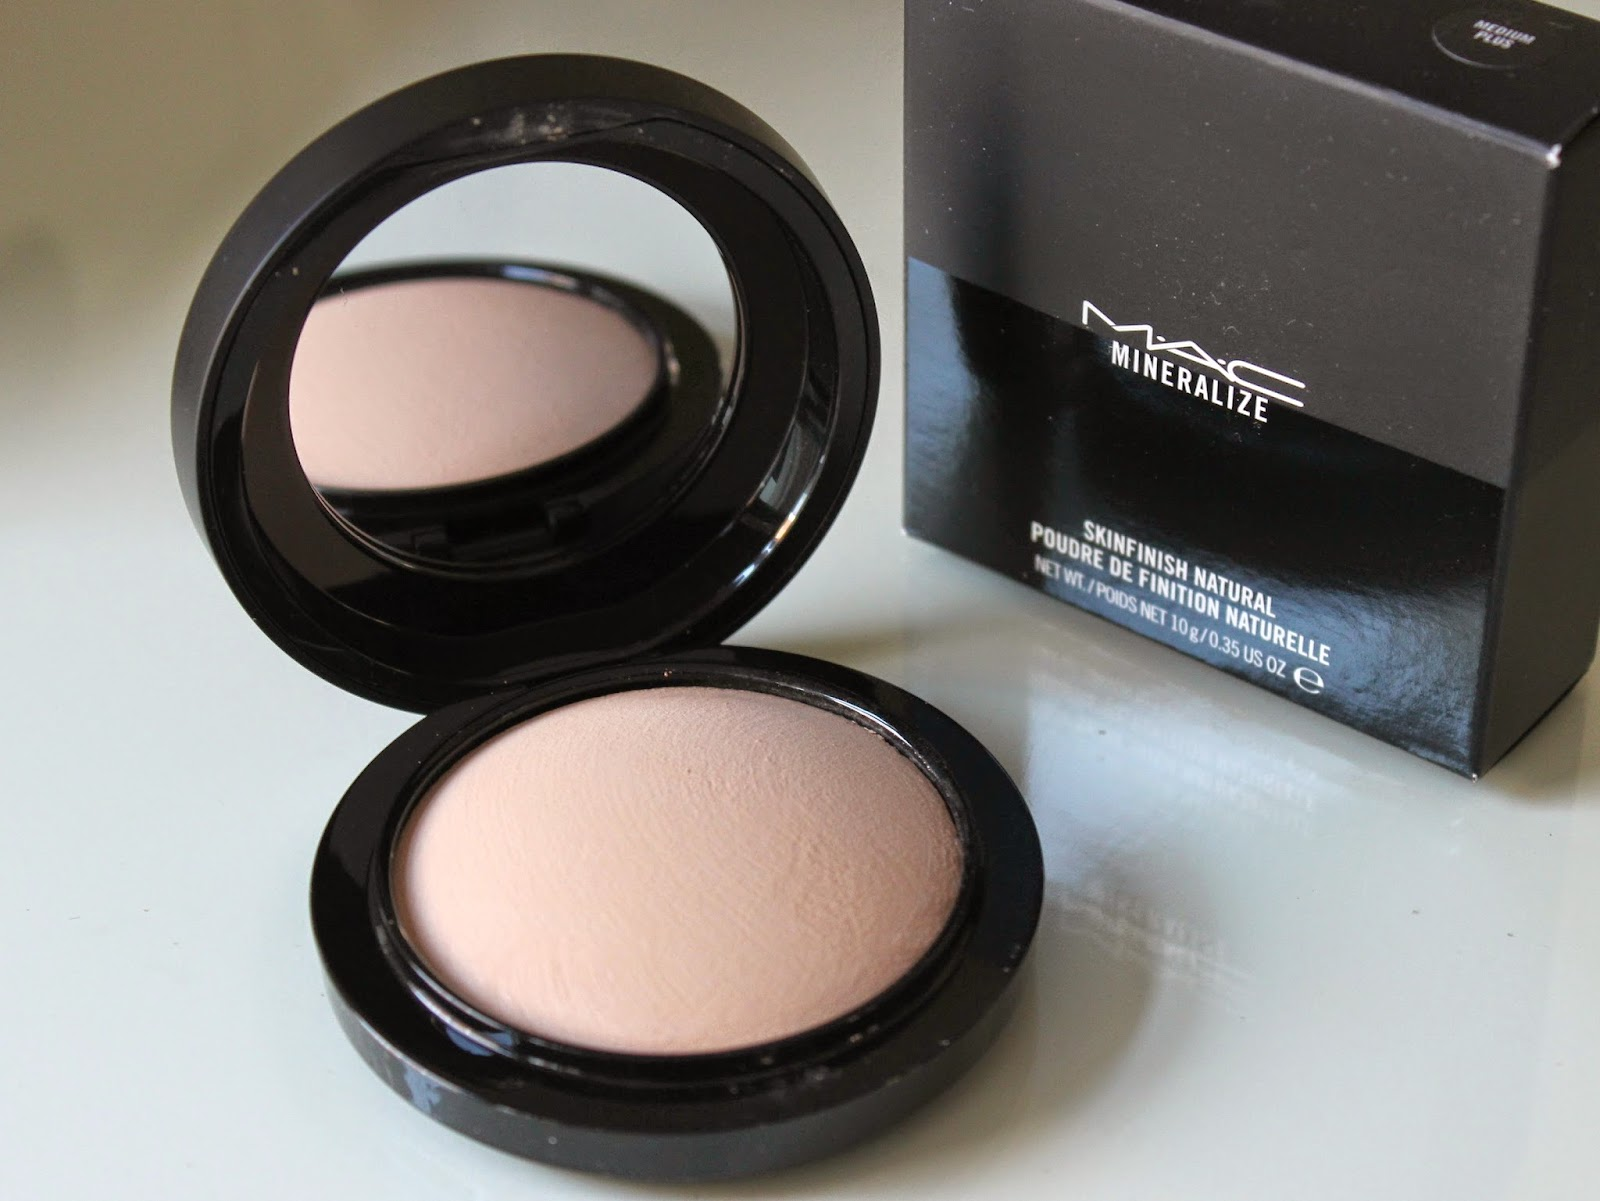 M.A.C Mineralize Skin Finish Natural